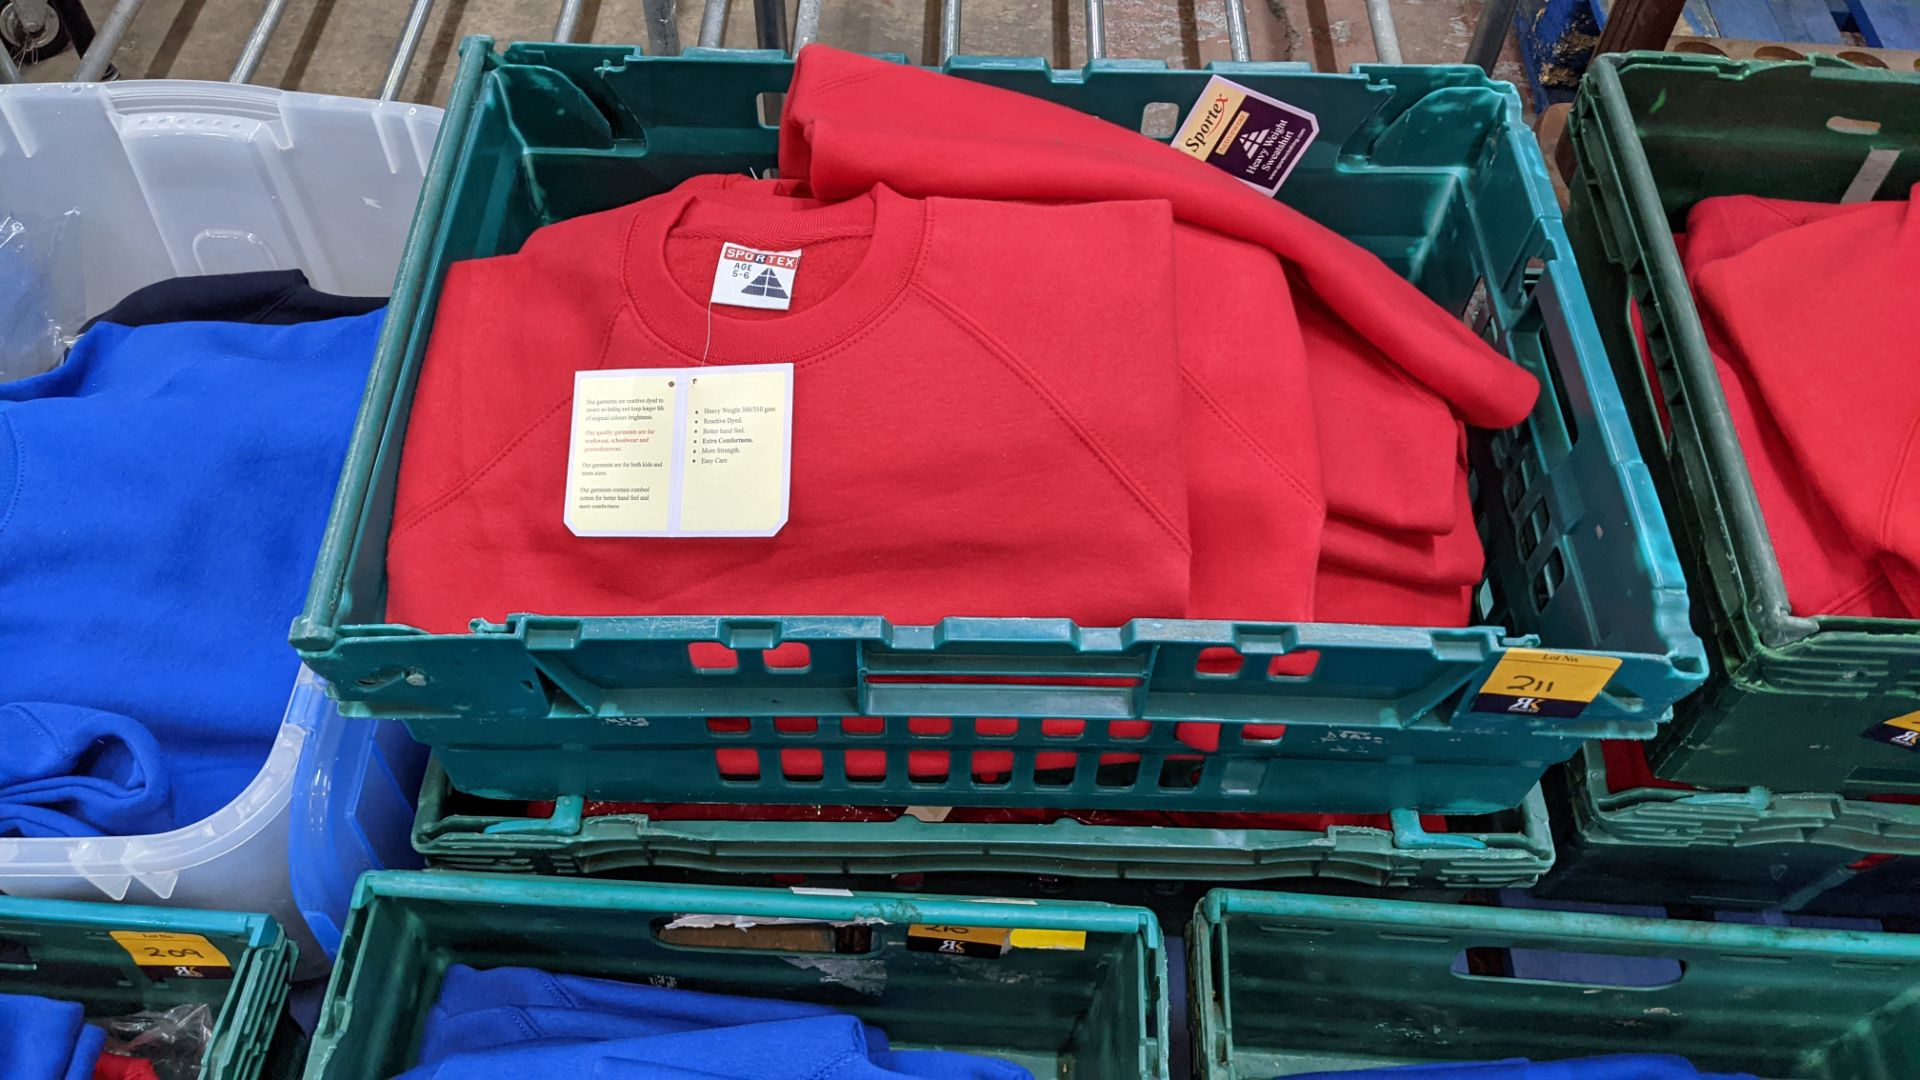 Approx 25 off Sportex children's assorted sweatshirts - the contents of 2 crates. NB crates exclude